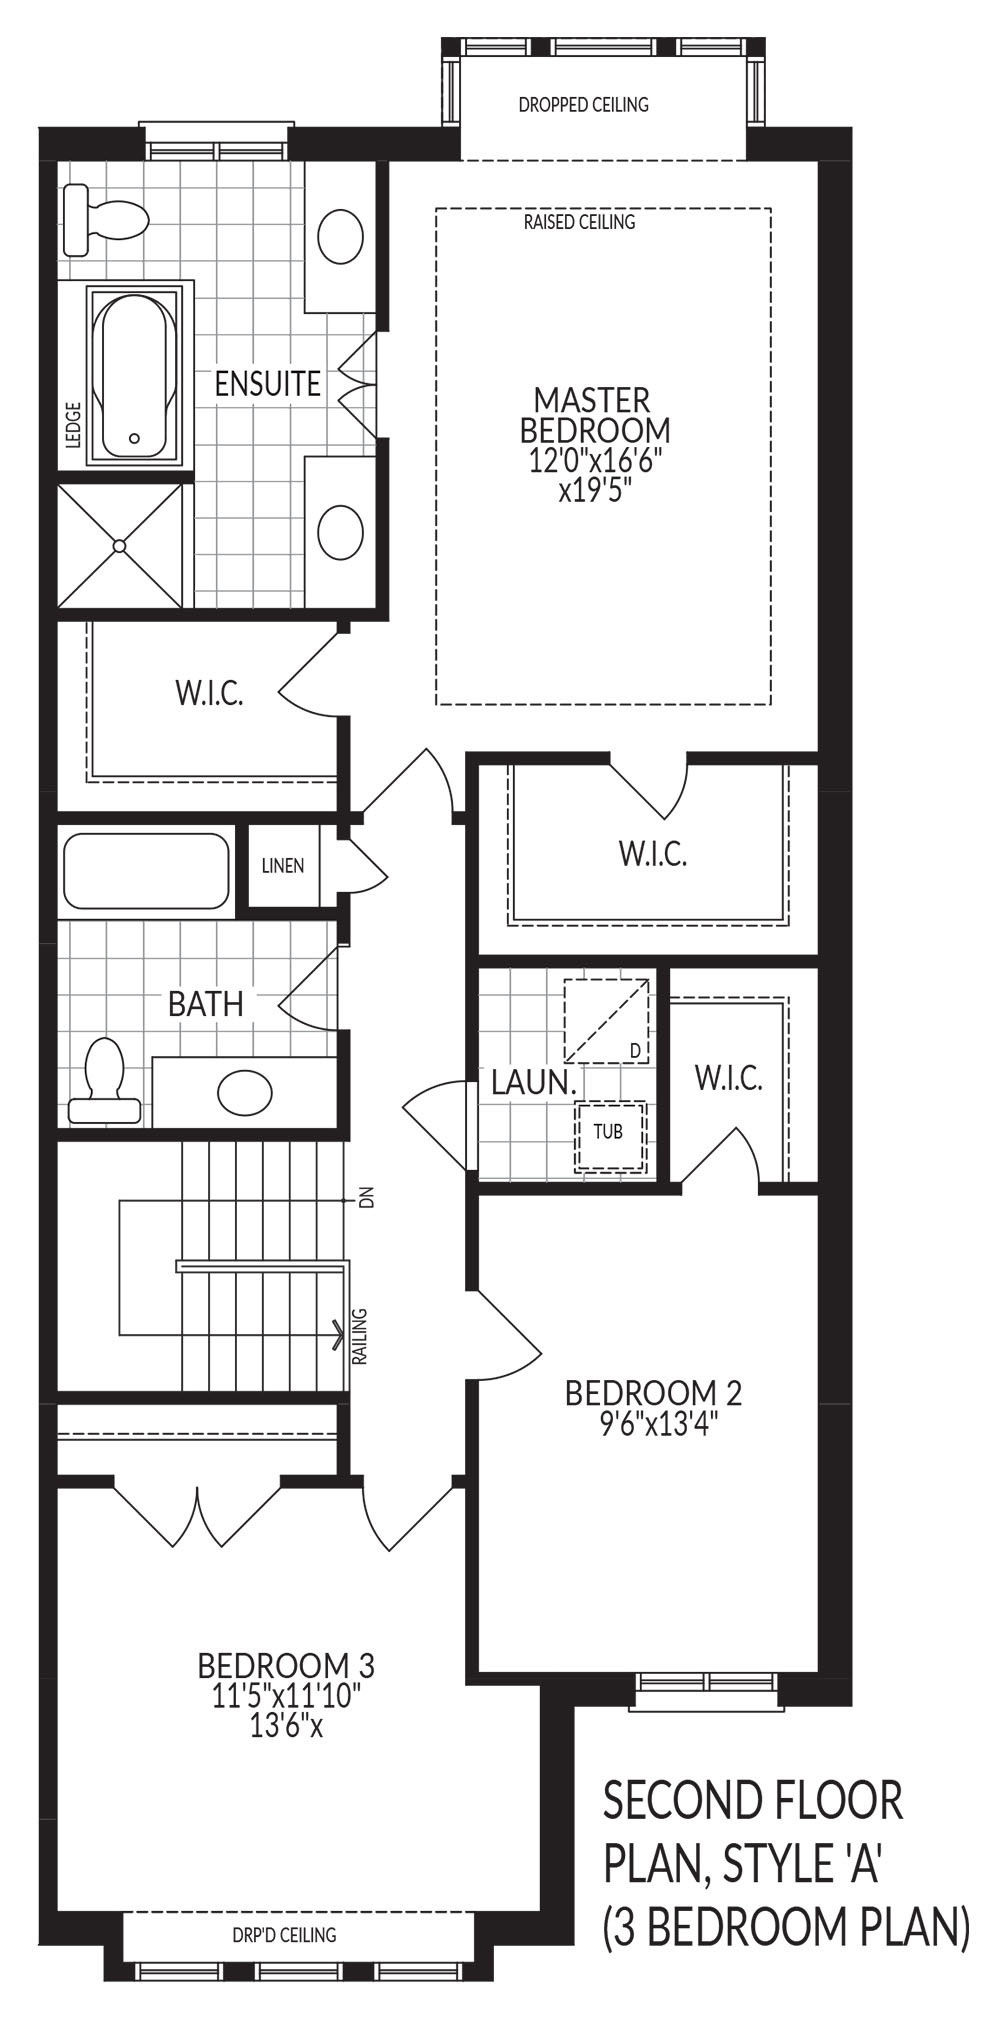 Second Floor Style A (3 Bedroom)